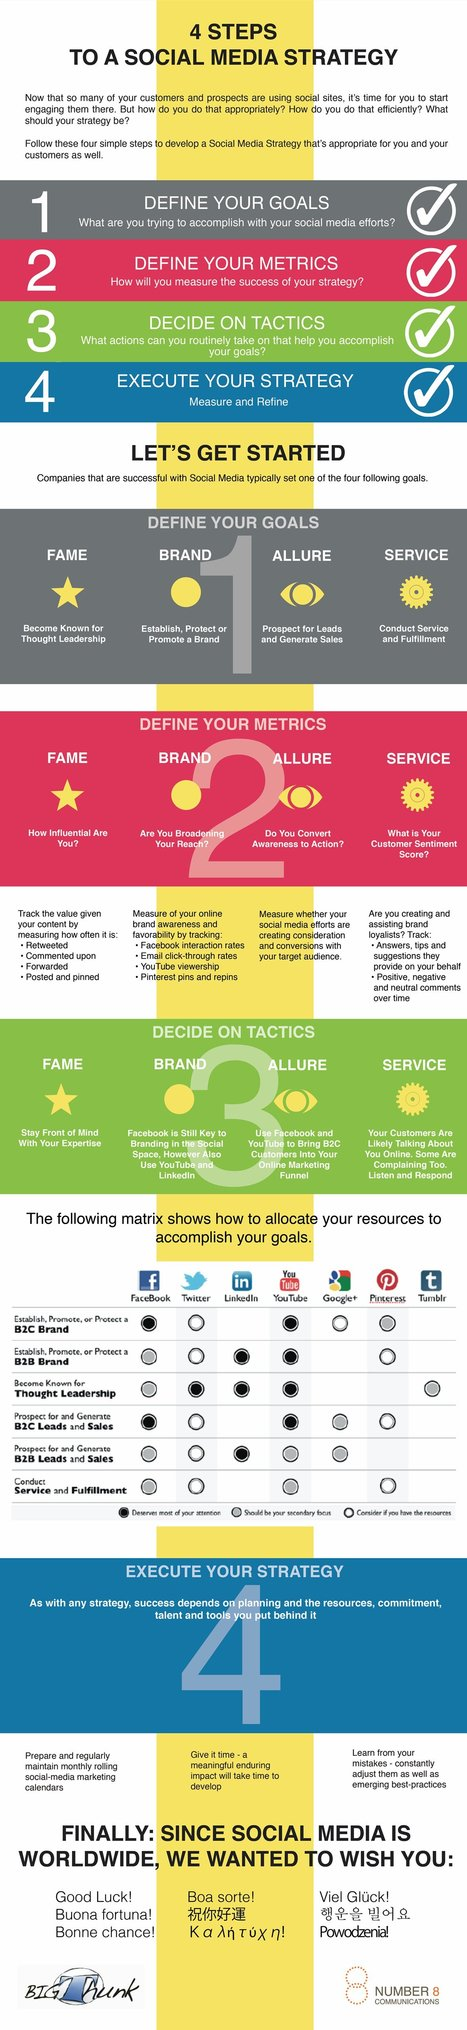 4 Steps To A Social Media Strategy [INFOGRAPHIC] - AllTwitter | RedPrairie is Commerce in Motion | Scoop.it